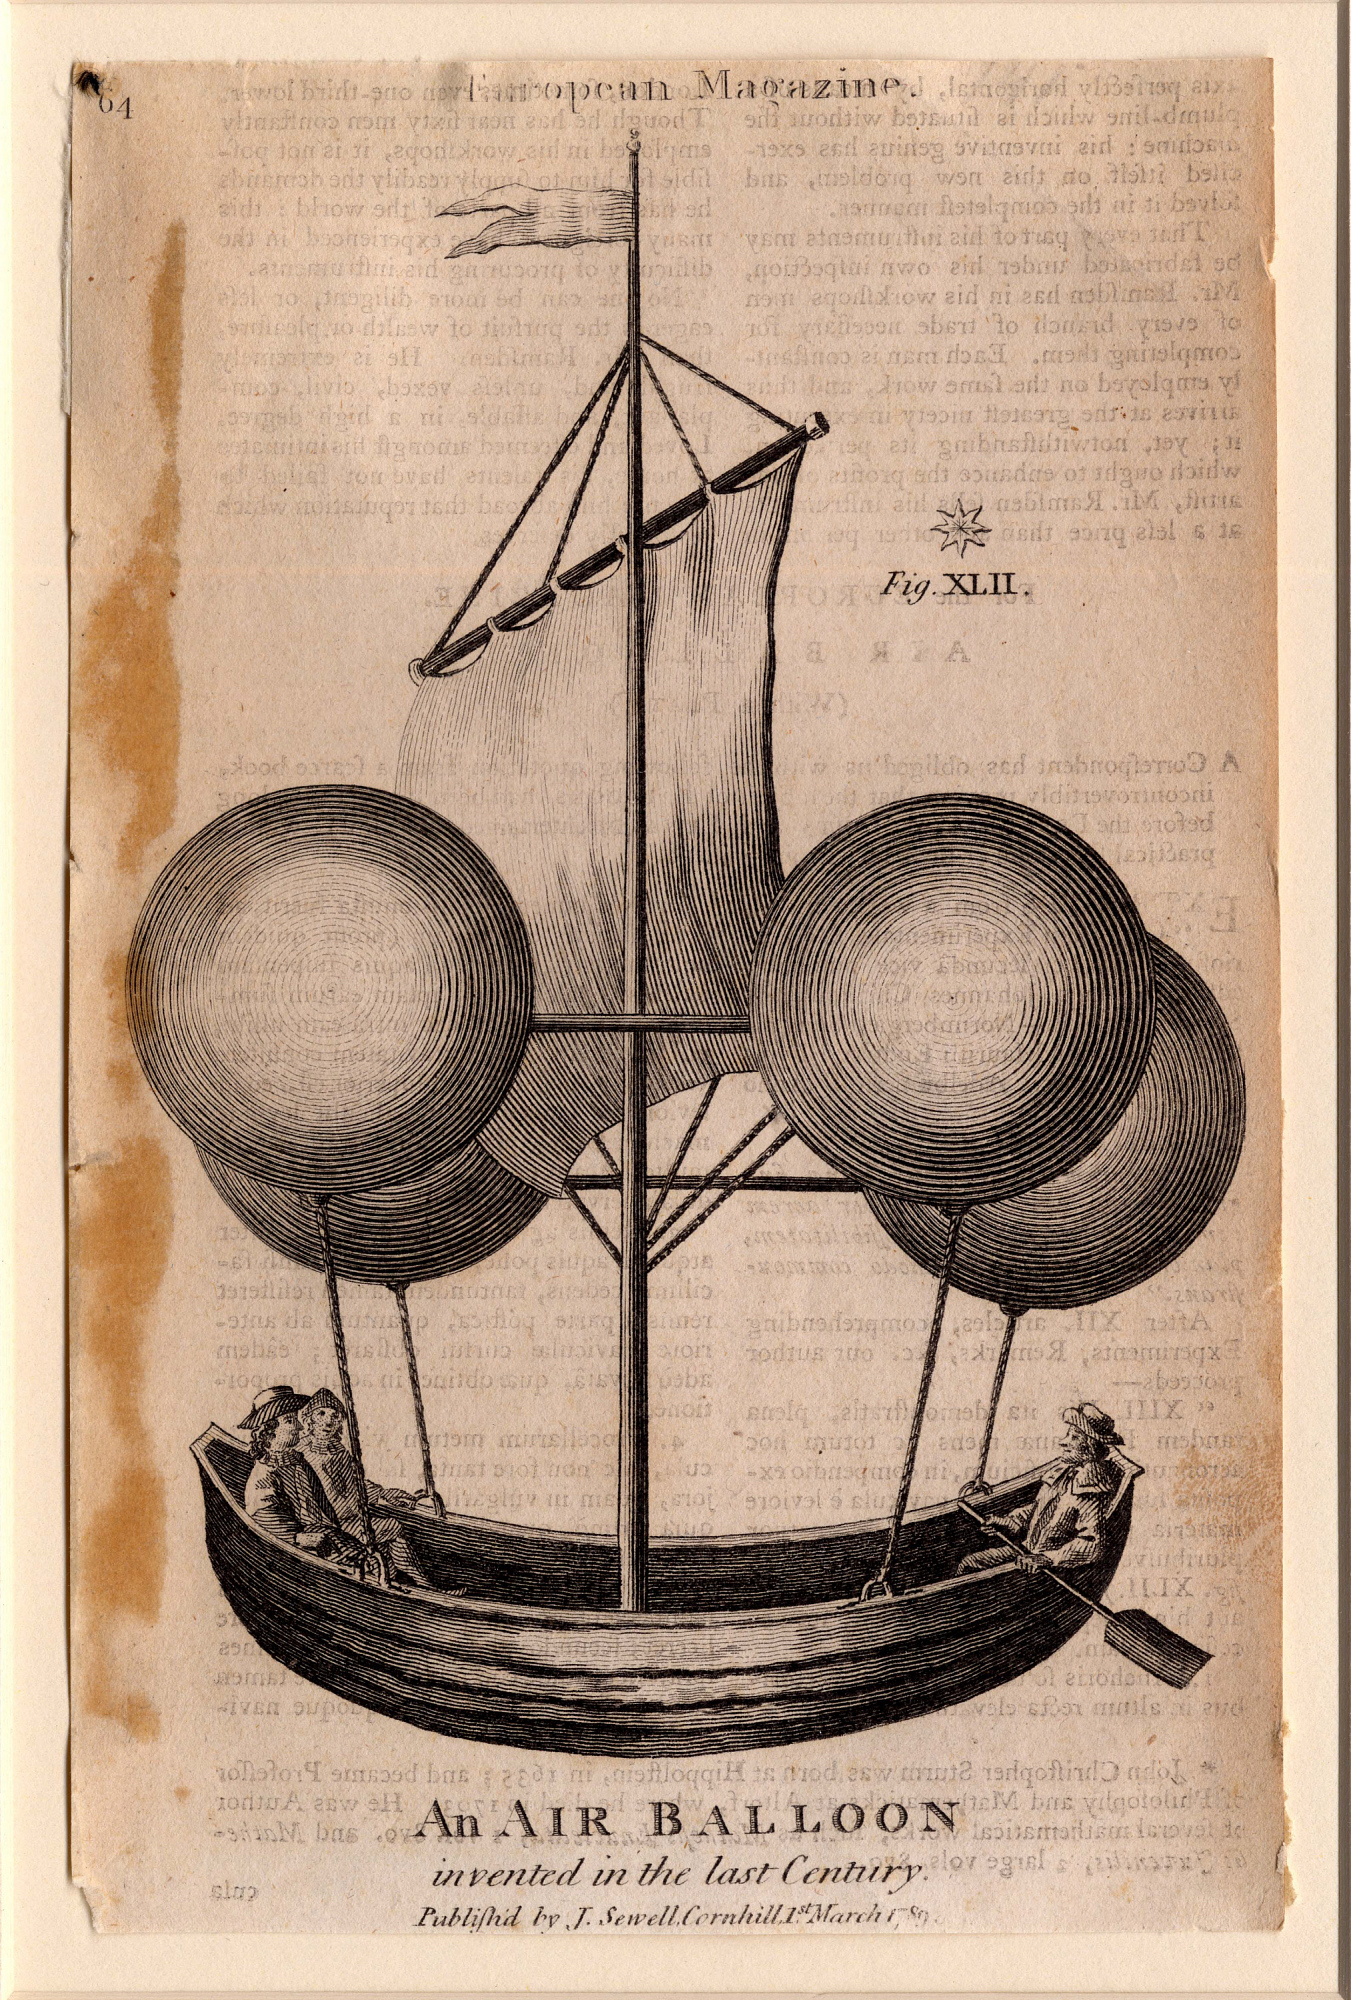 images for An Air Balloon